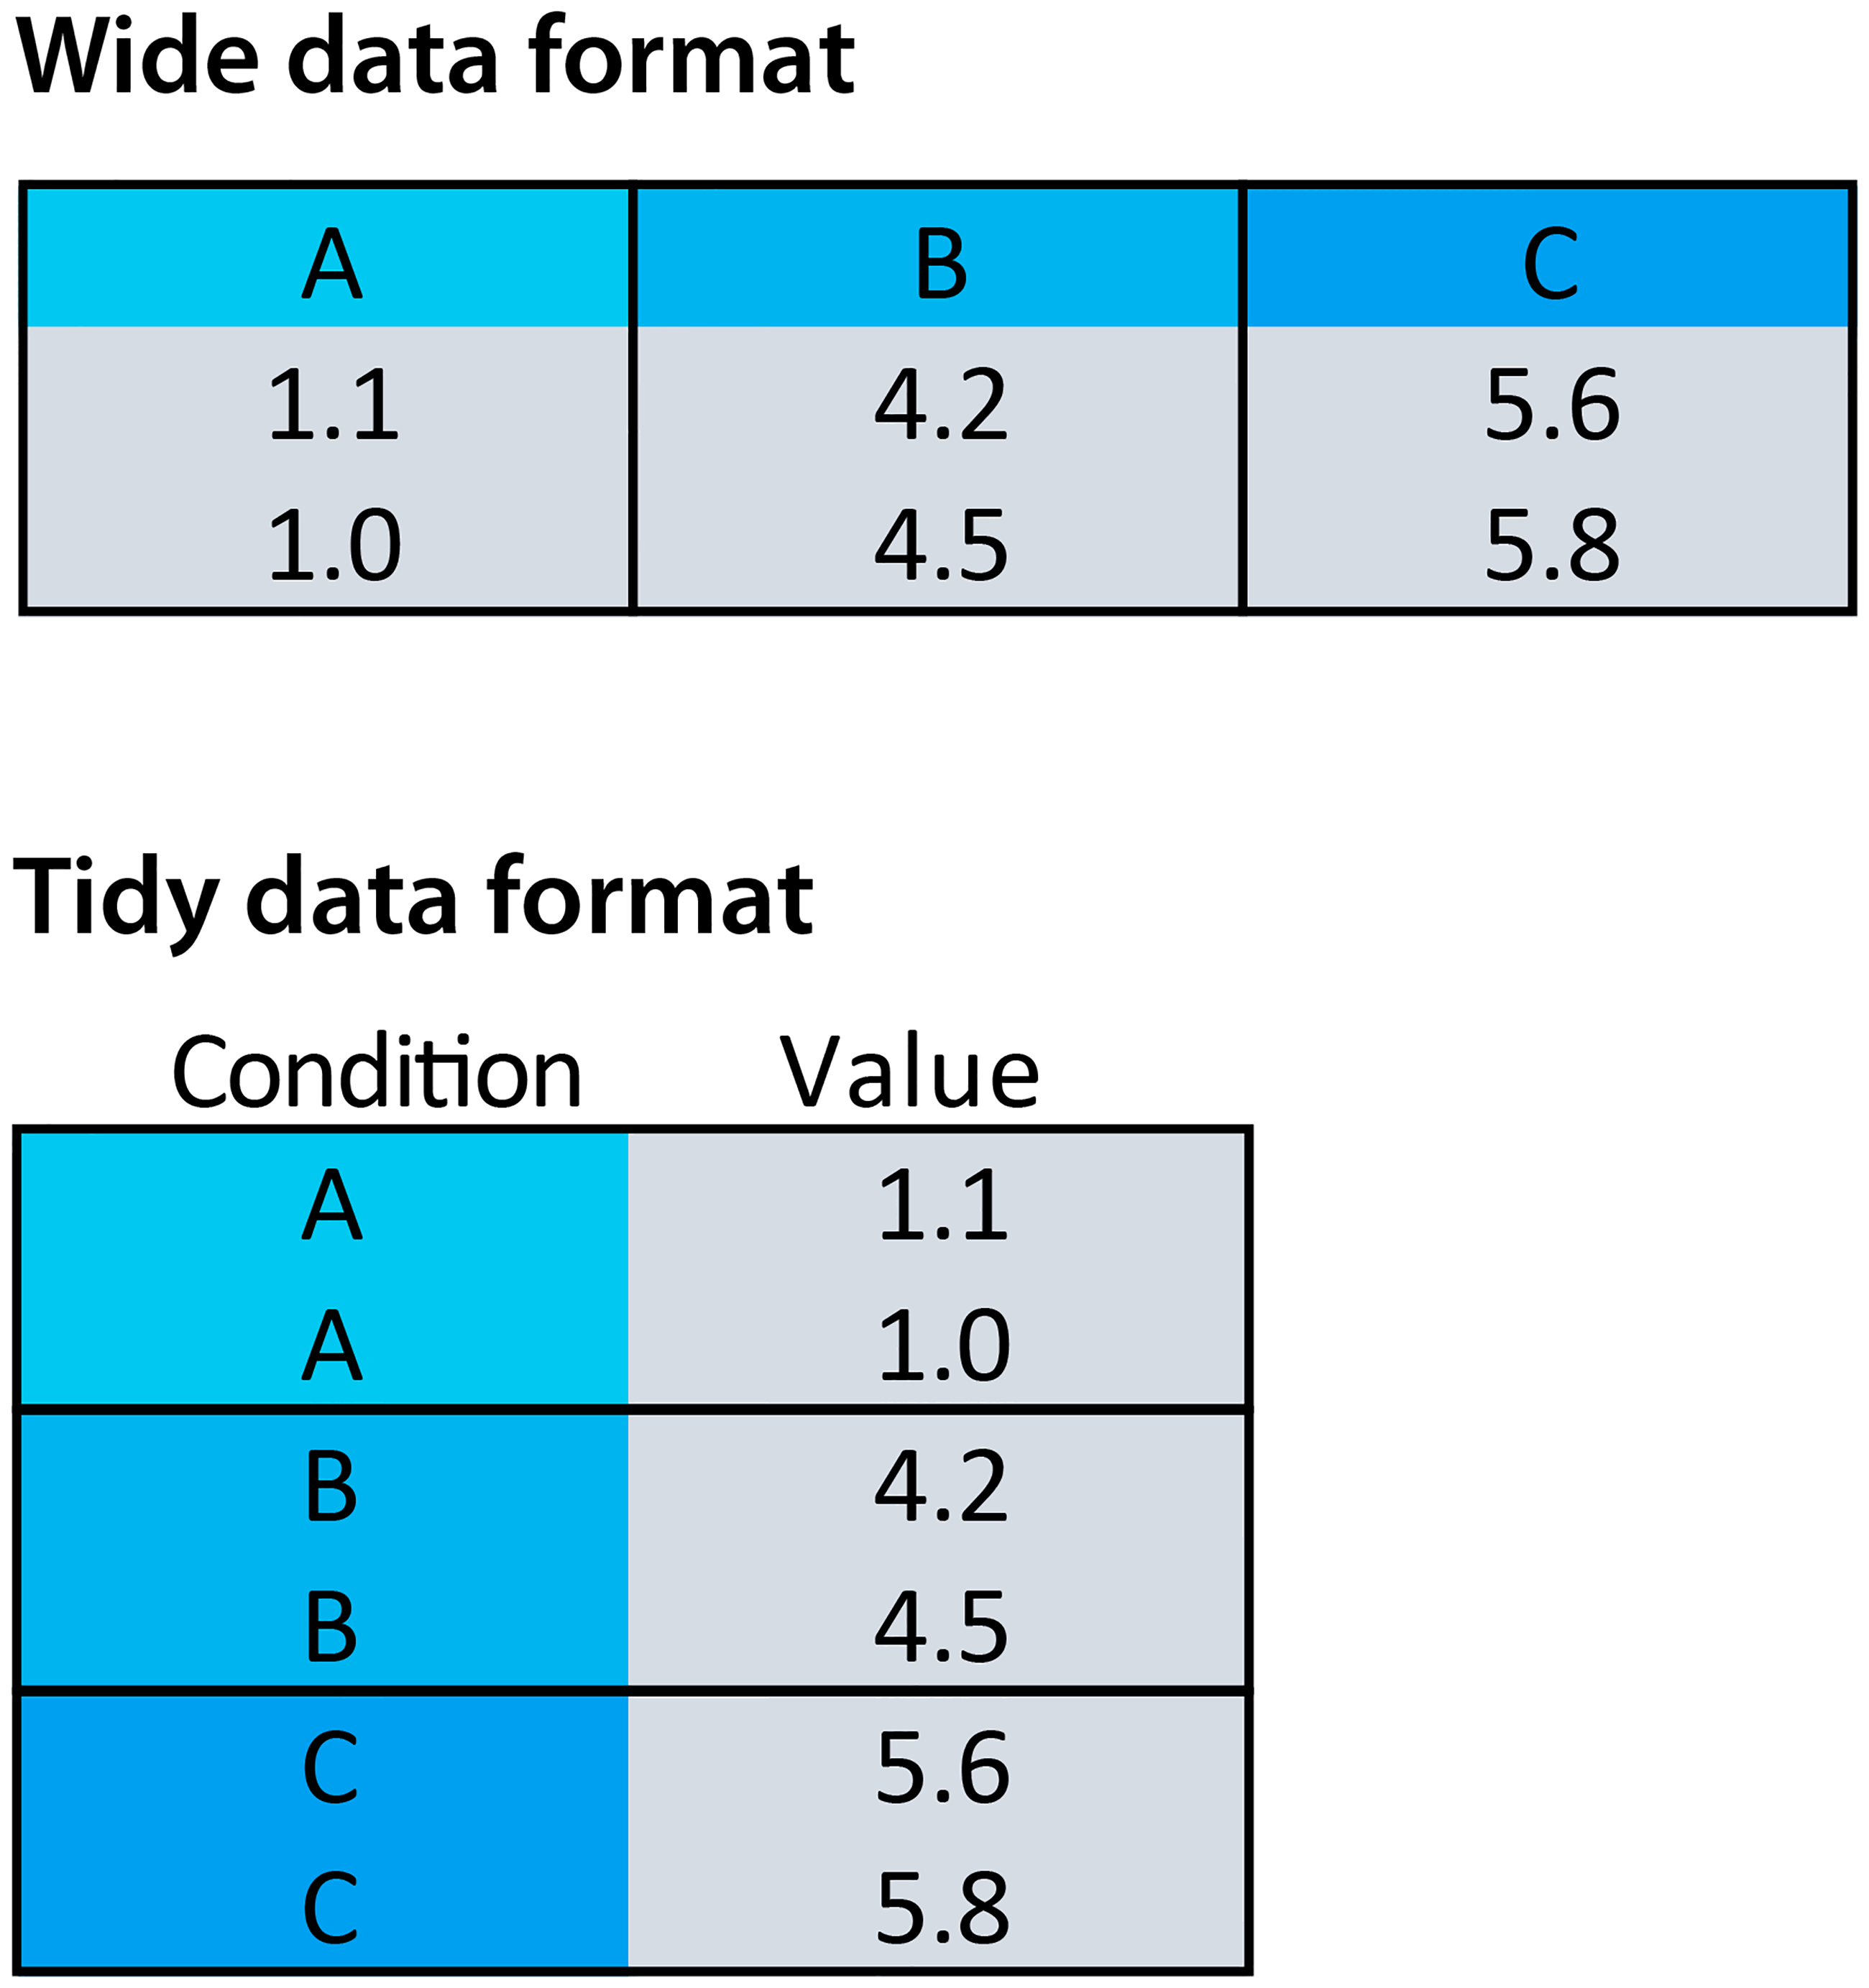 Illustration of wide and tidy data formats, from Postma and Goedhart (2019)